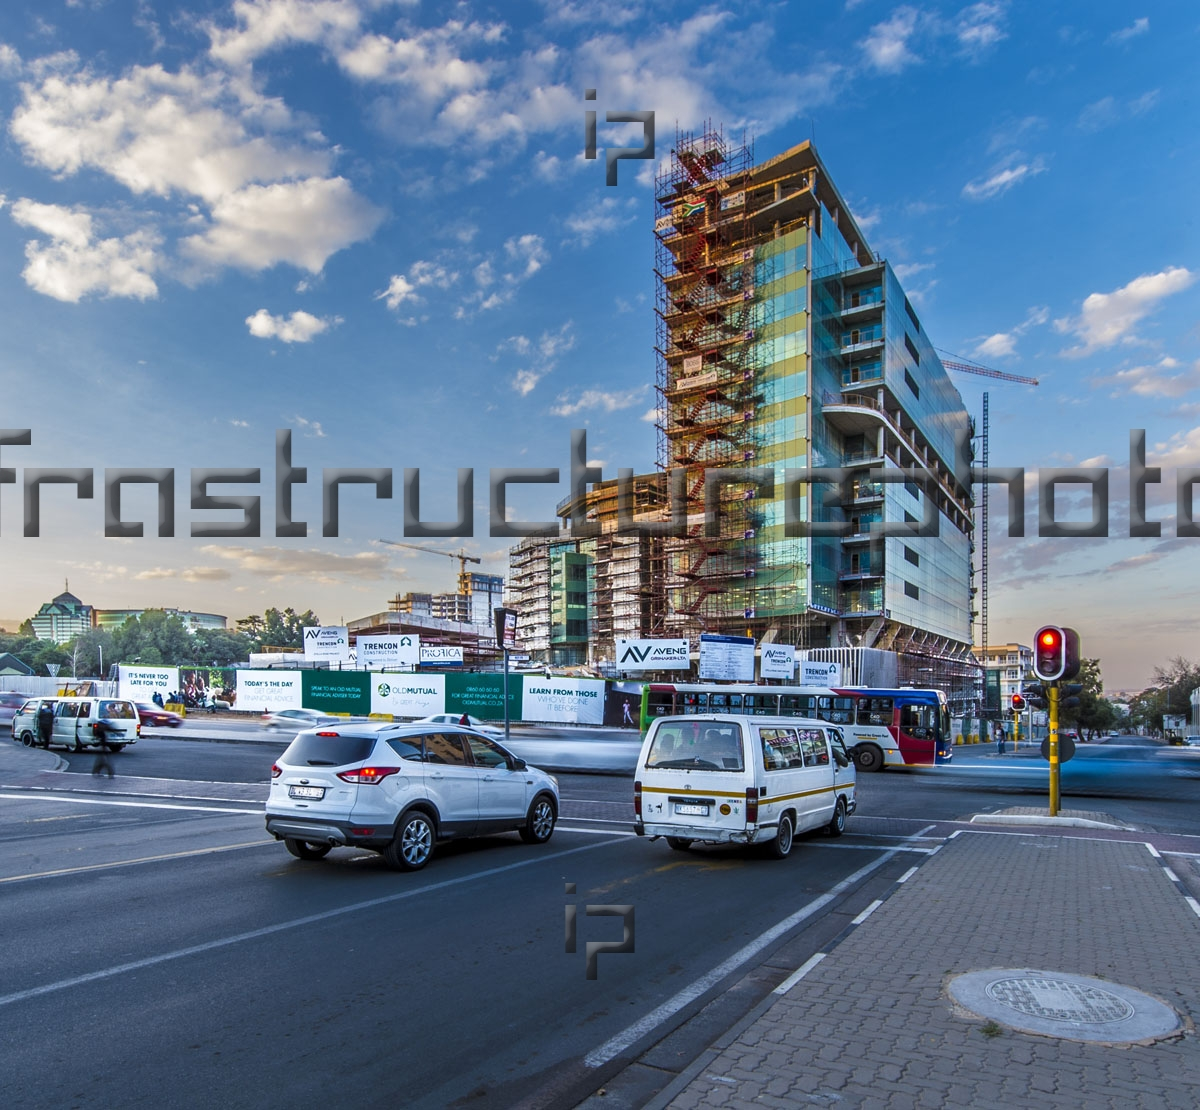 Old Mutual Emerging Markets Sandton